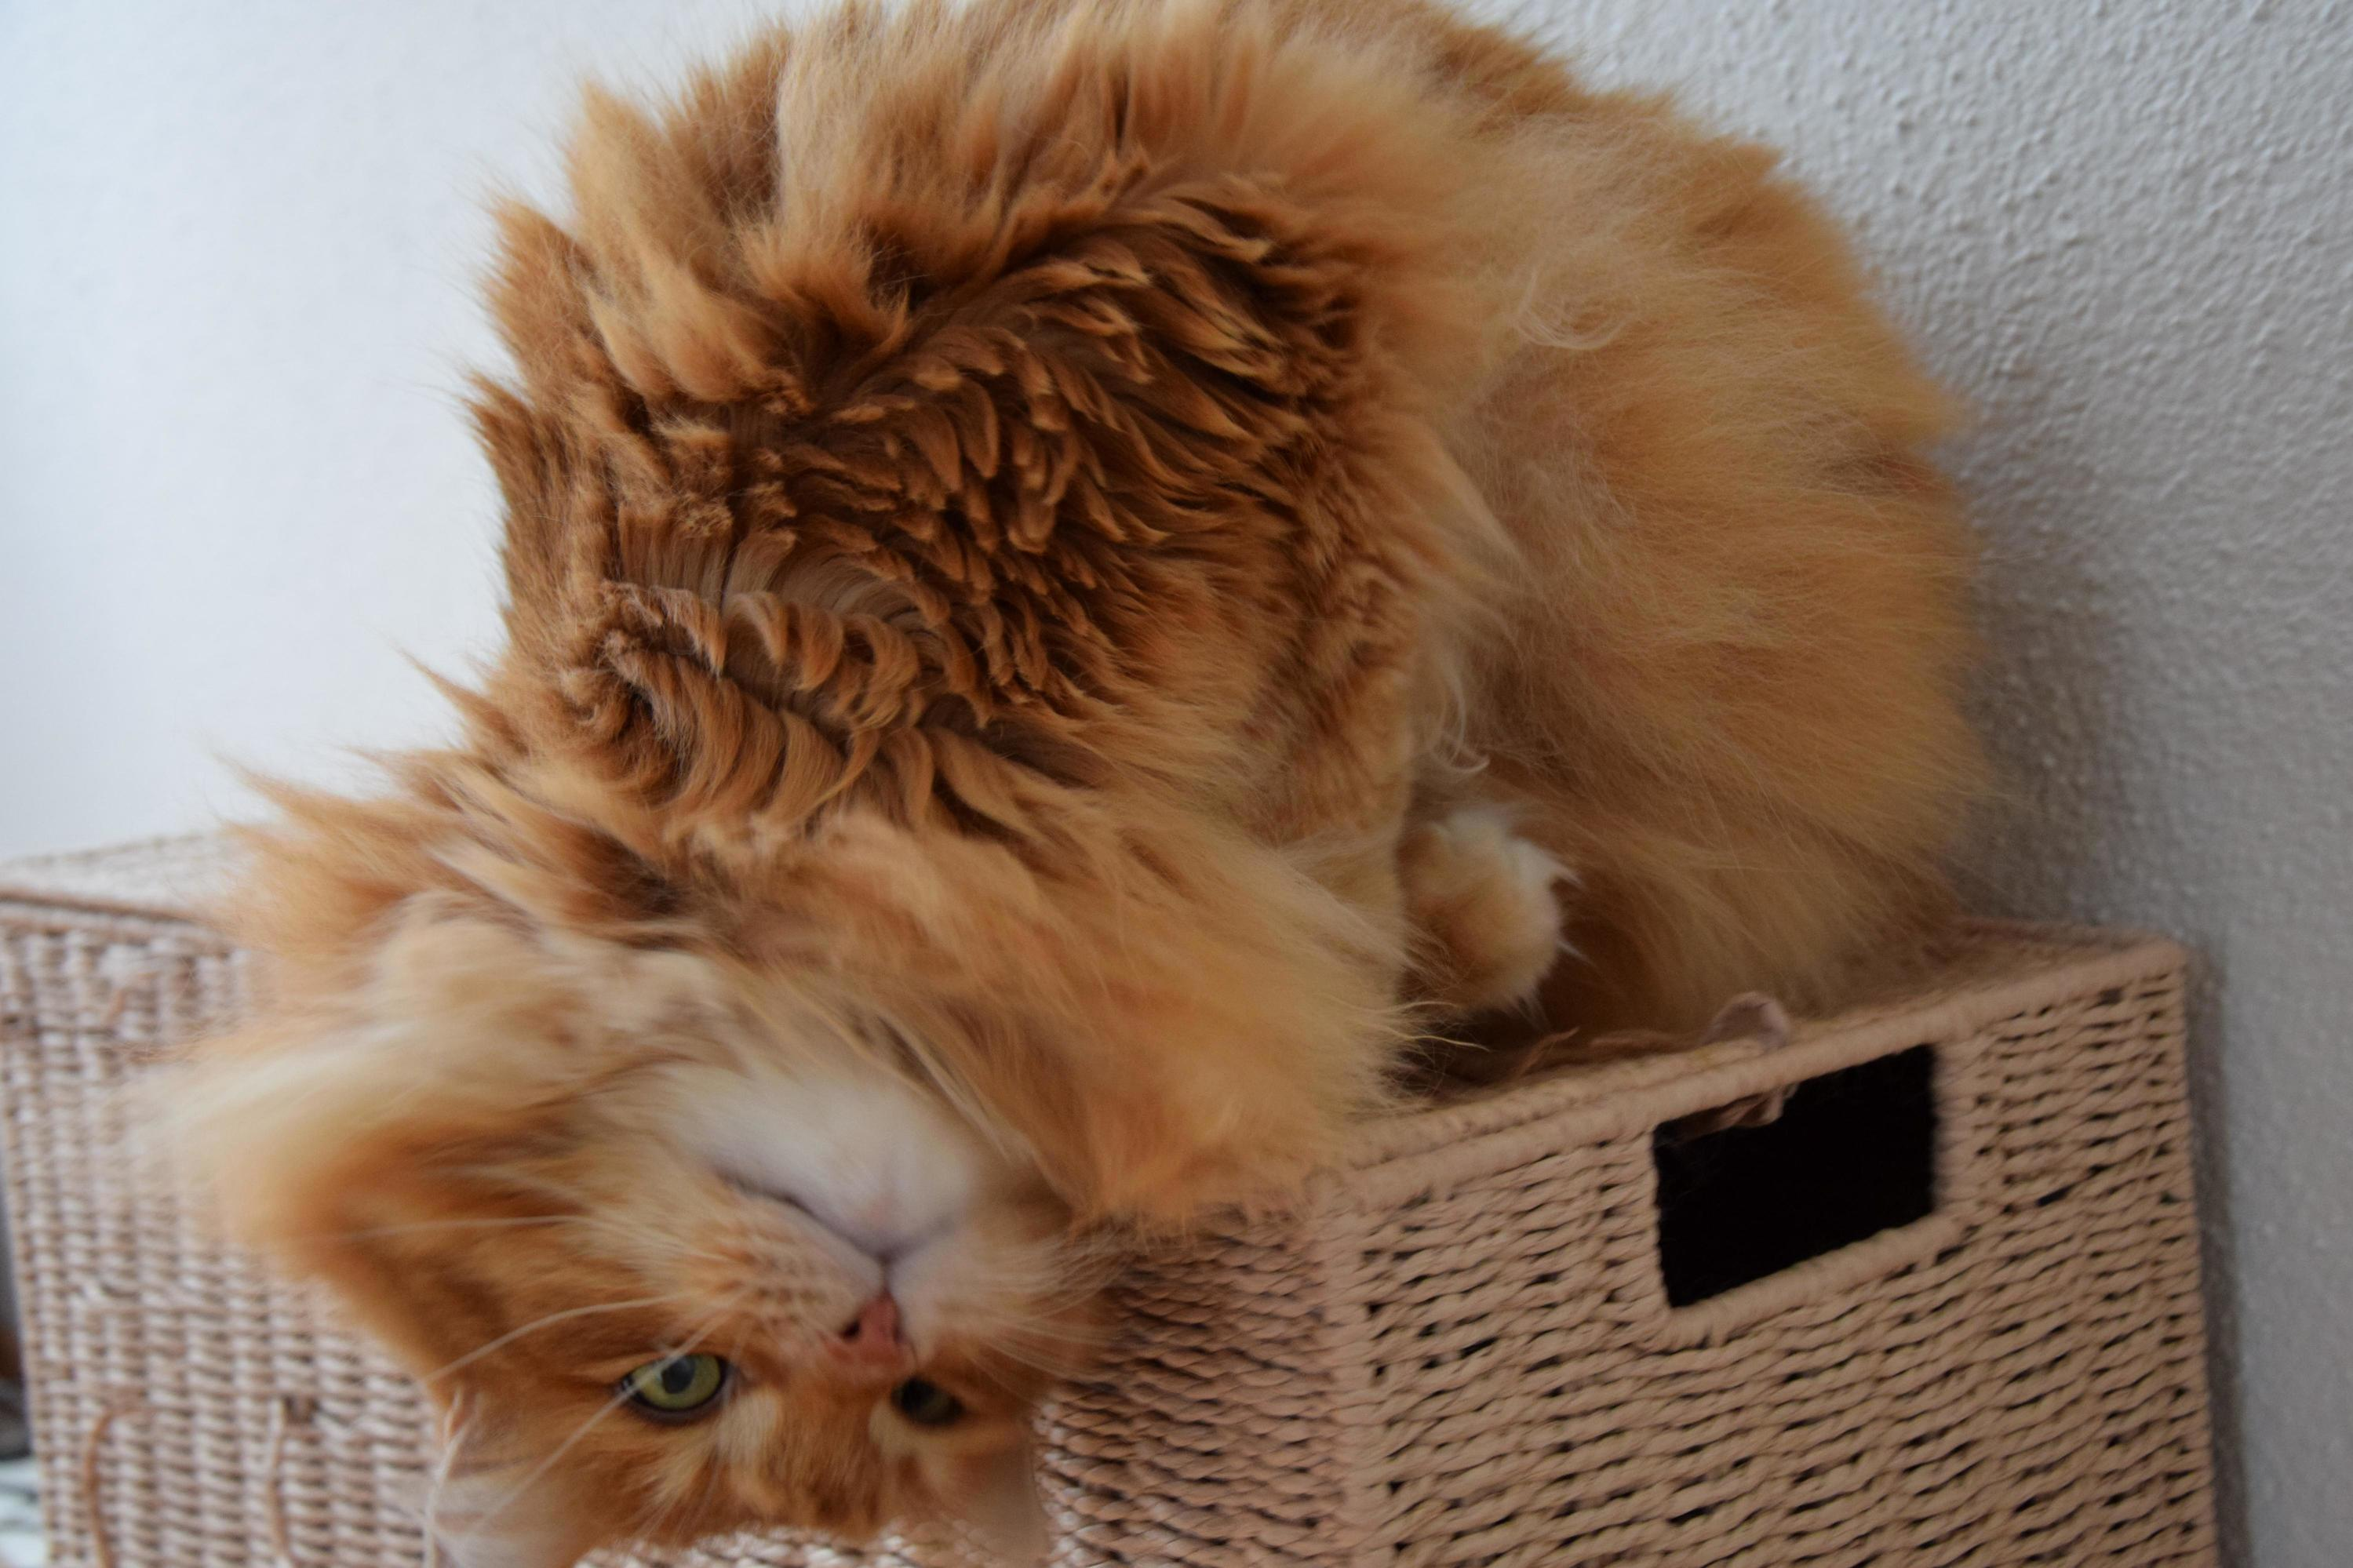 This is higgins, one of my norwegian forest cats. love his posture in the picture xd